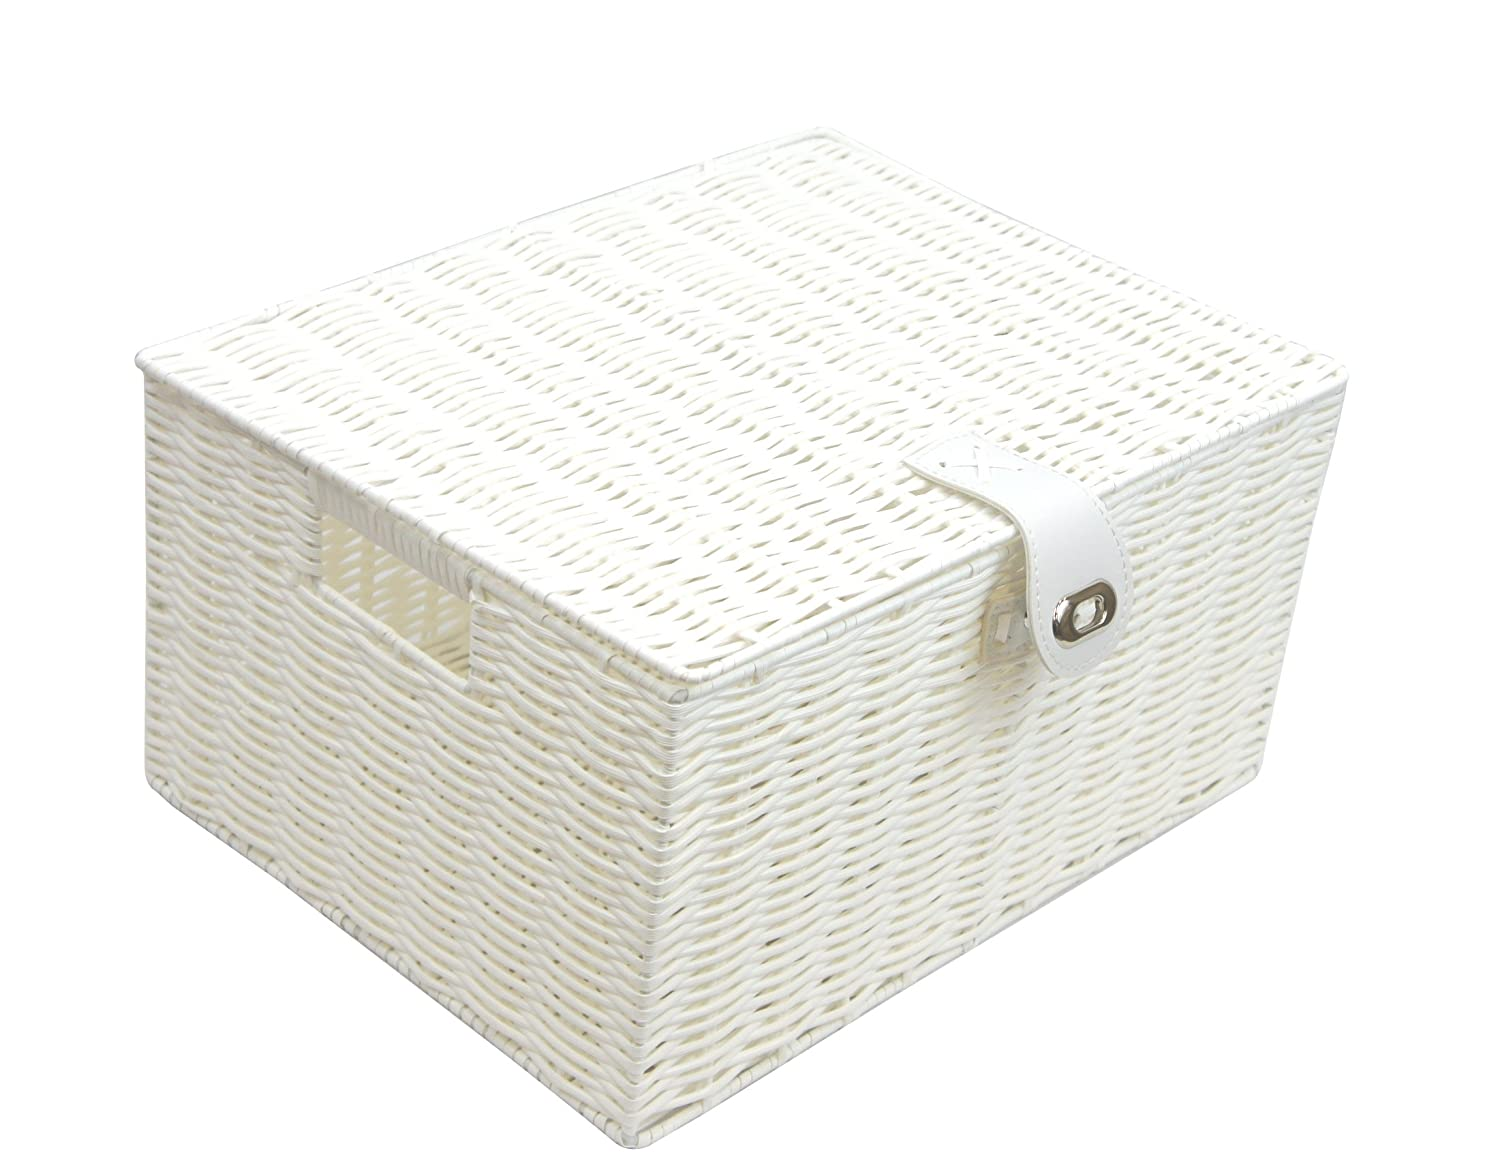 ARPAN large resin woven storage basket box with lid & lock – White PP-9119LW